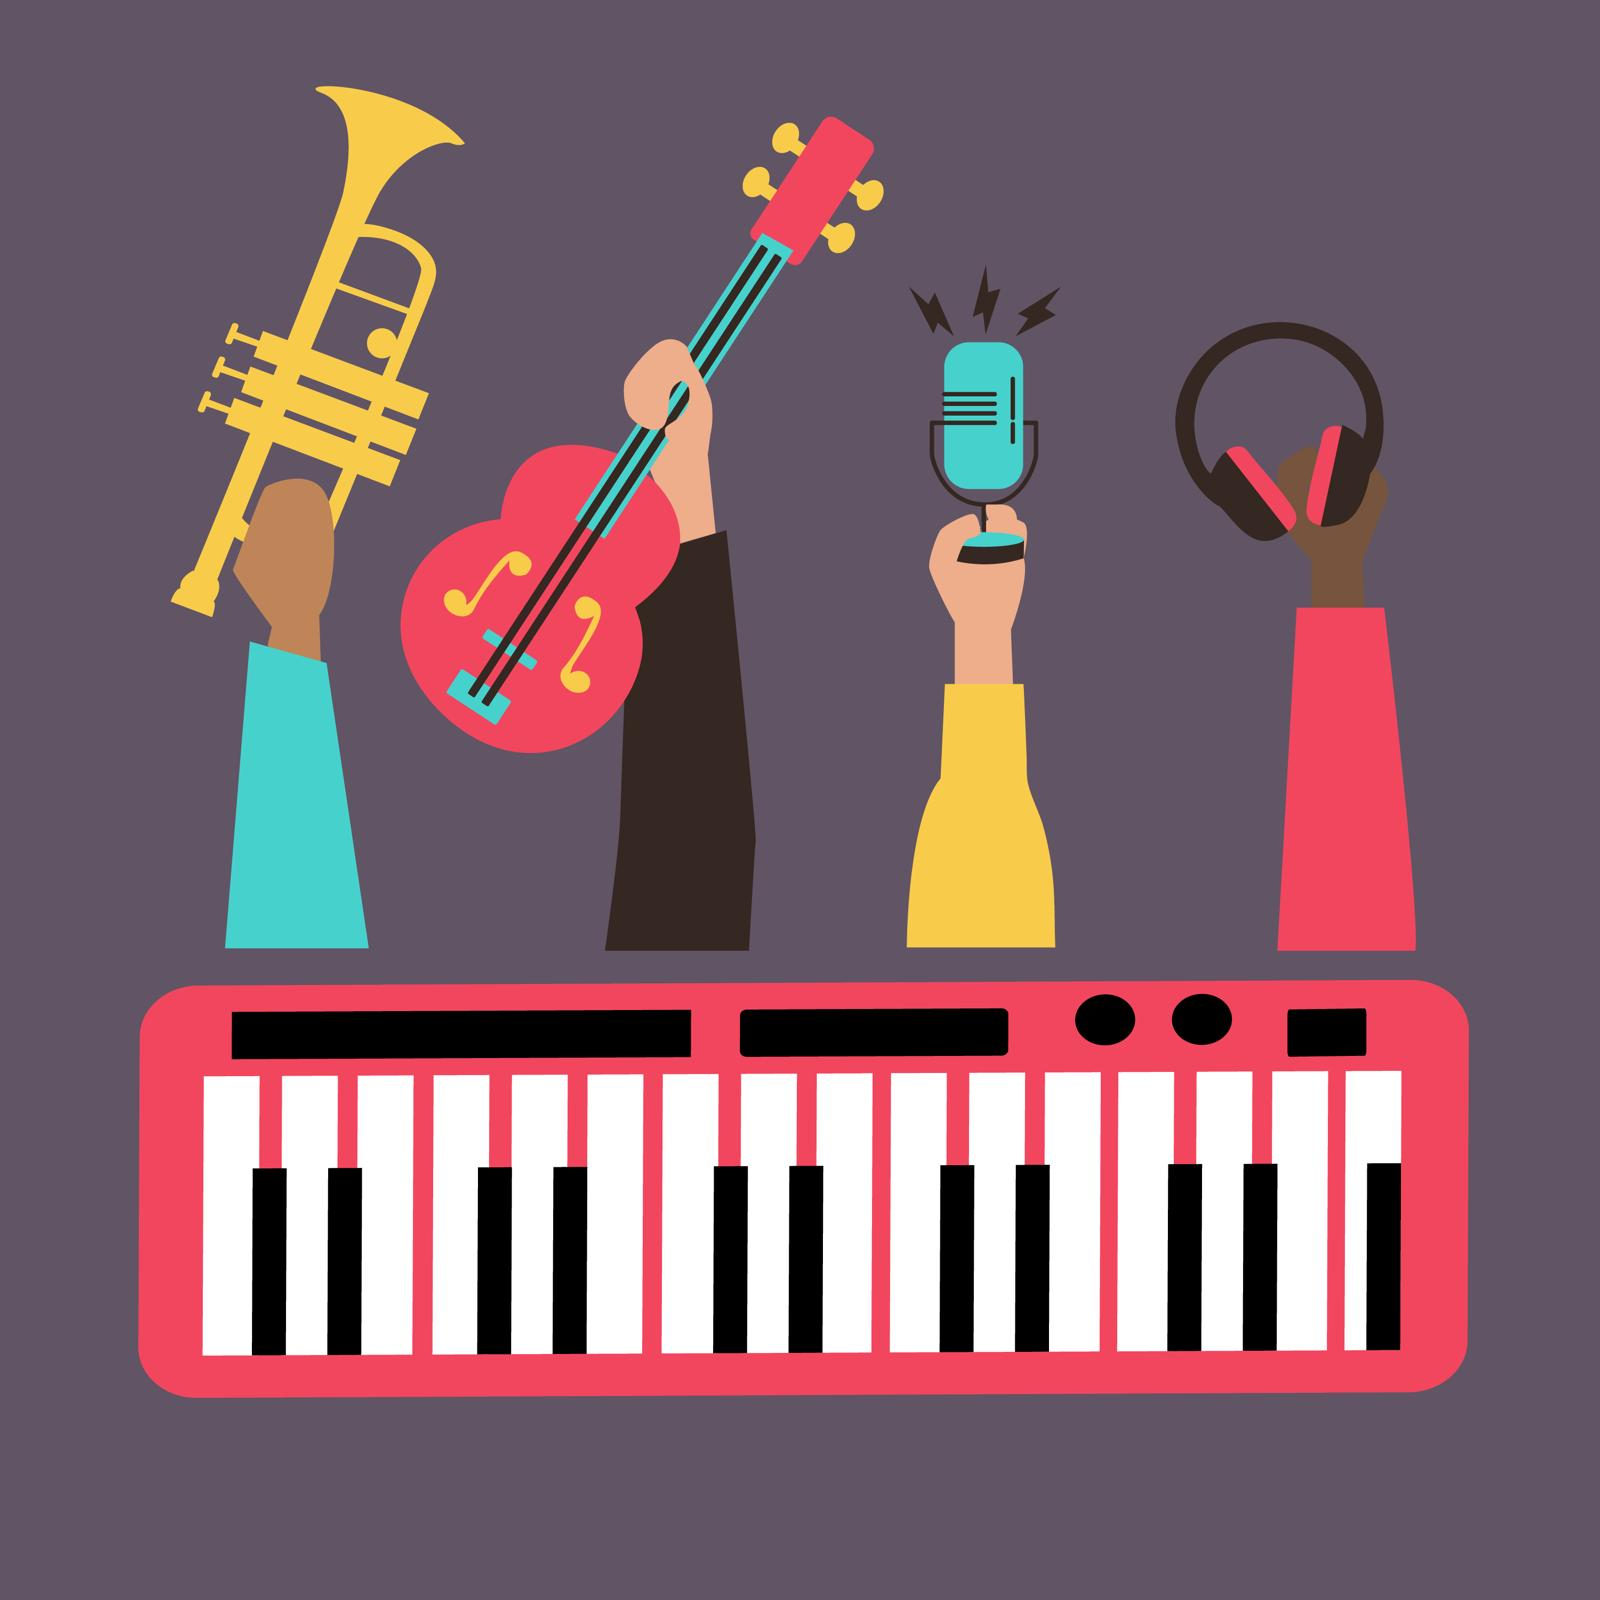 Instrument illustration by Ivory Rowen for 360 Magazine